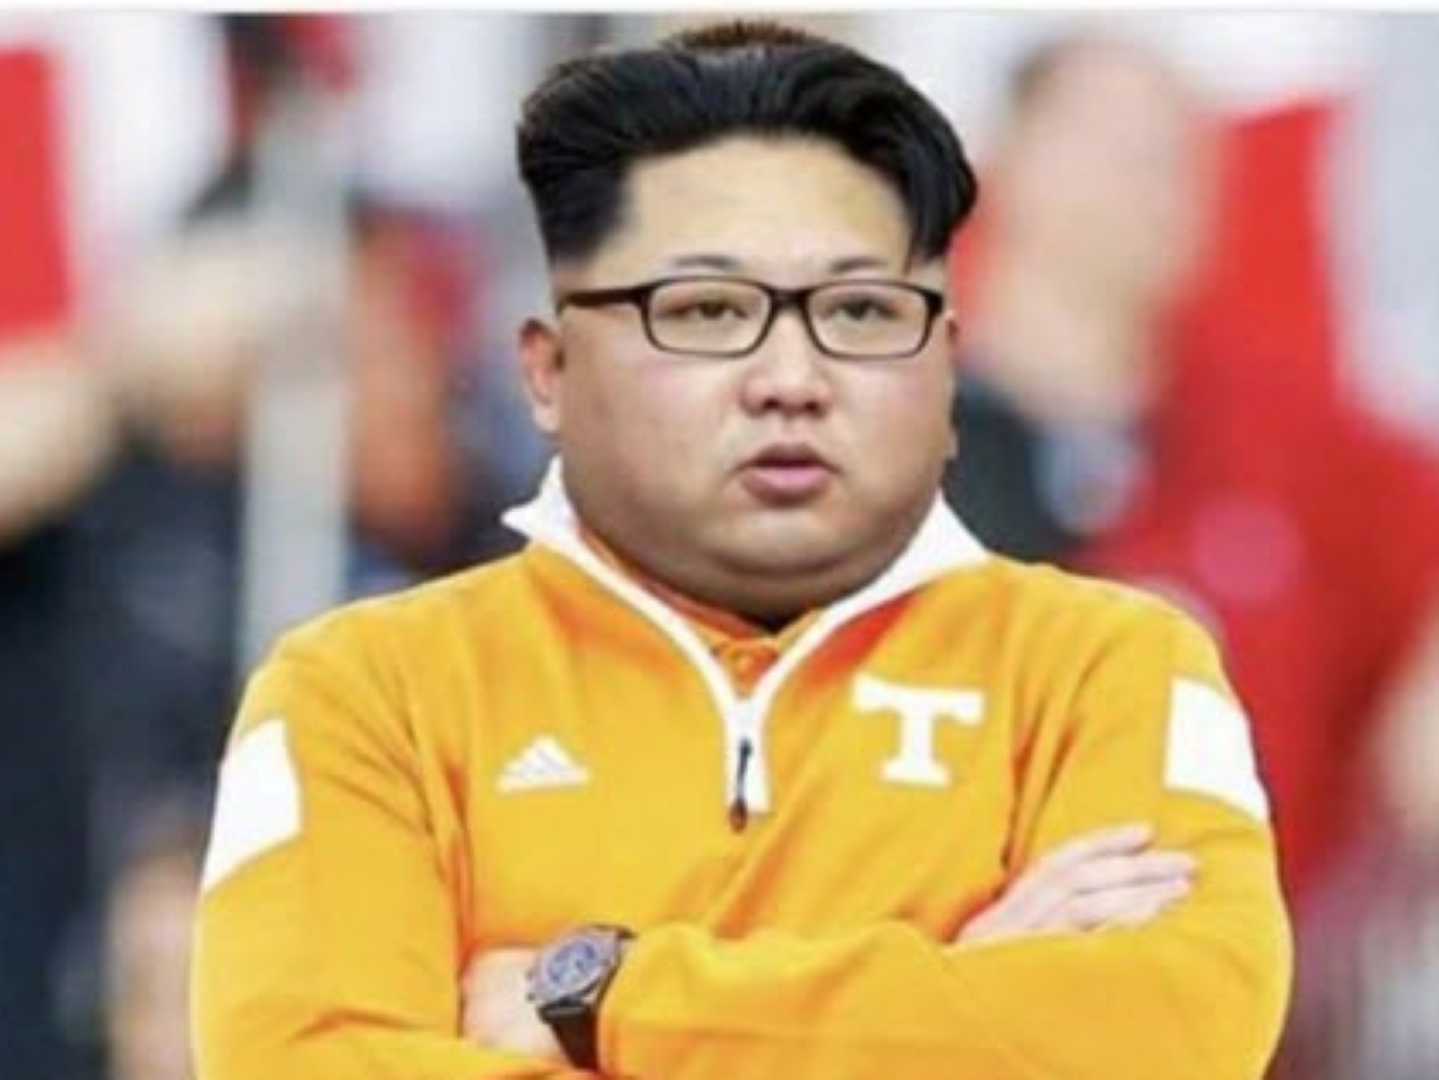 former-tennessee-coach-lane-kiffin-used-kim-jong-un-to-torch-the-vols-bungled-head-coaching-search-Large.png